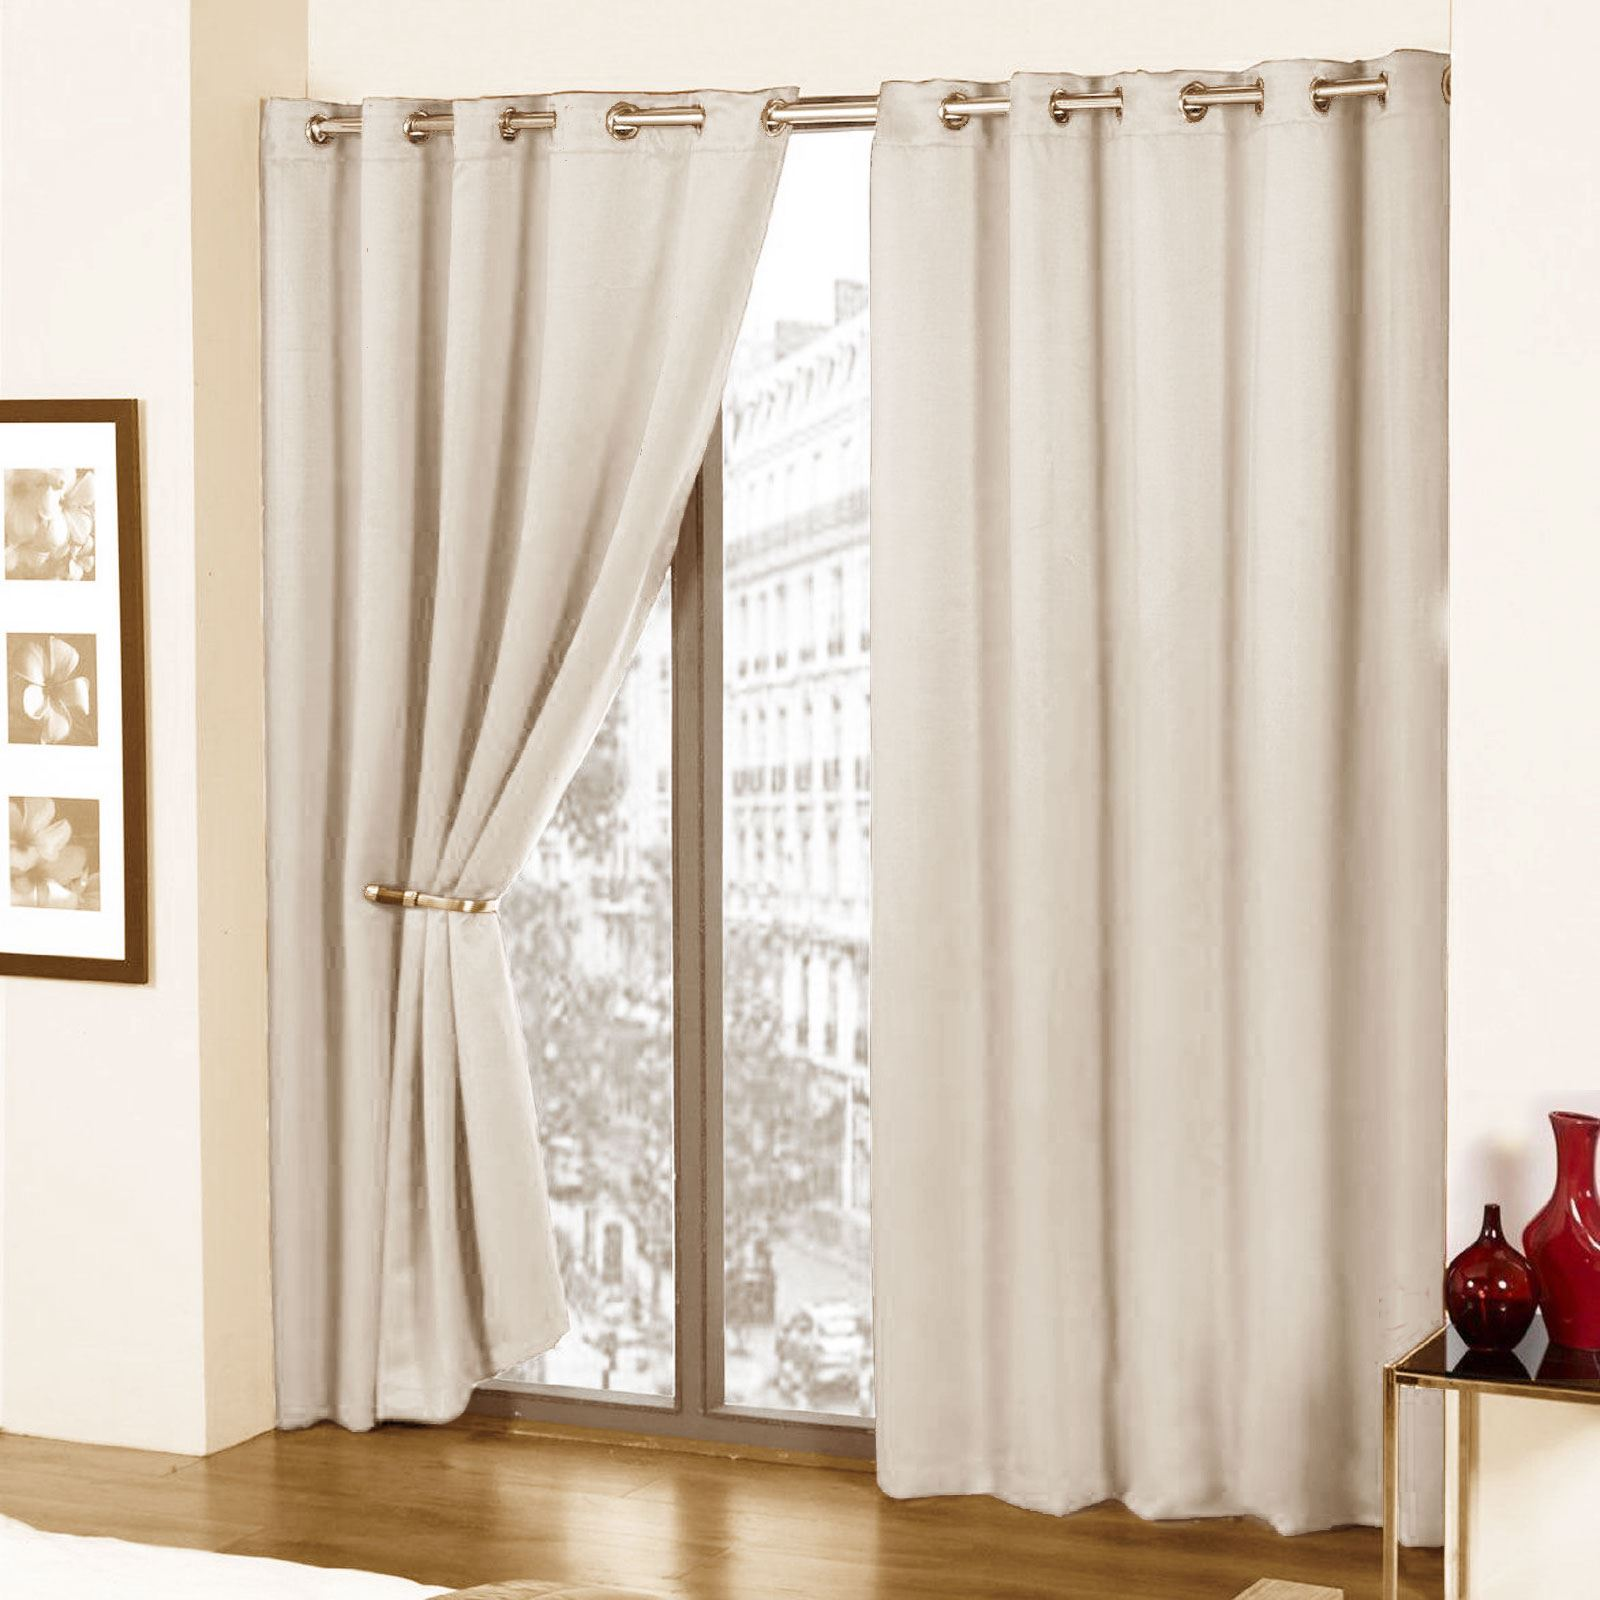 COMFYTEX FULLY LINED FAUX SILK LINED CURTAINS WITH EYELET RING TOP WITH TIE BACK